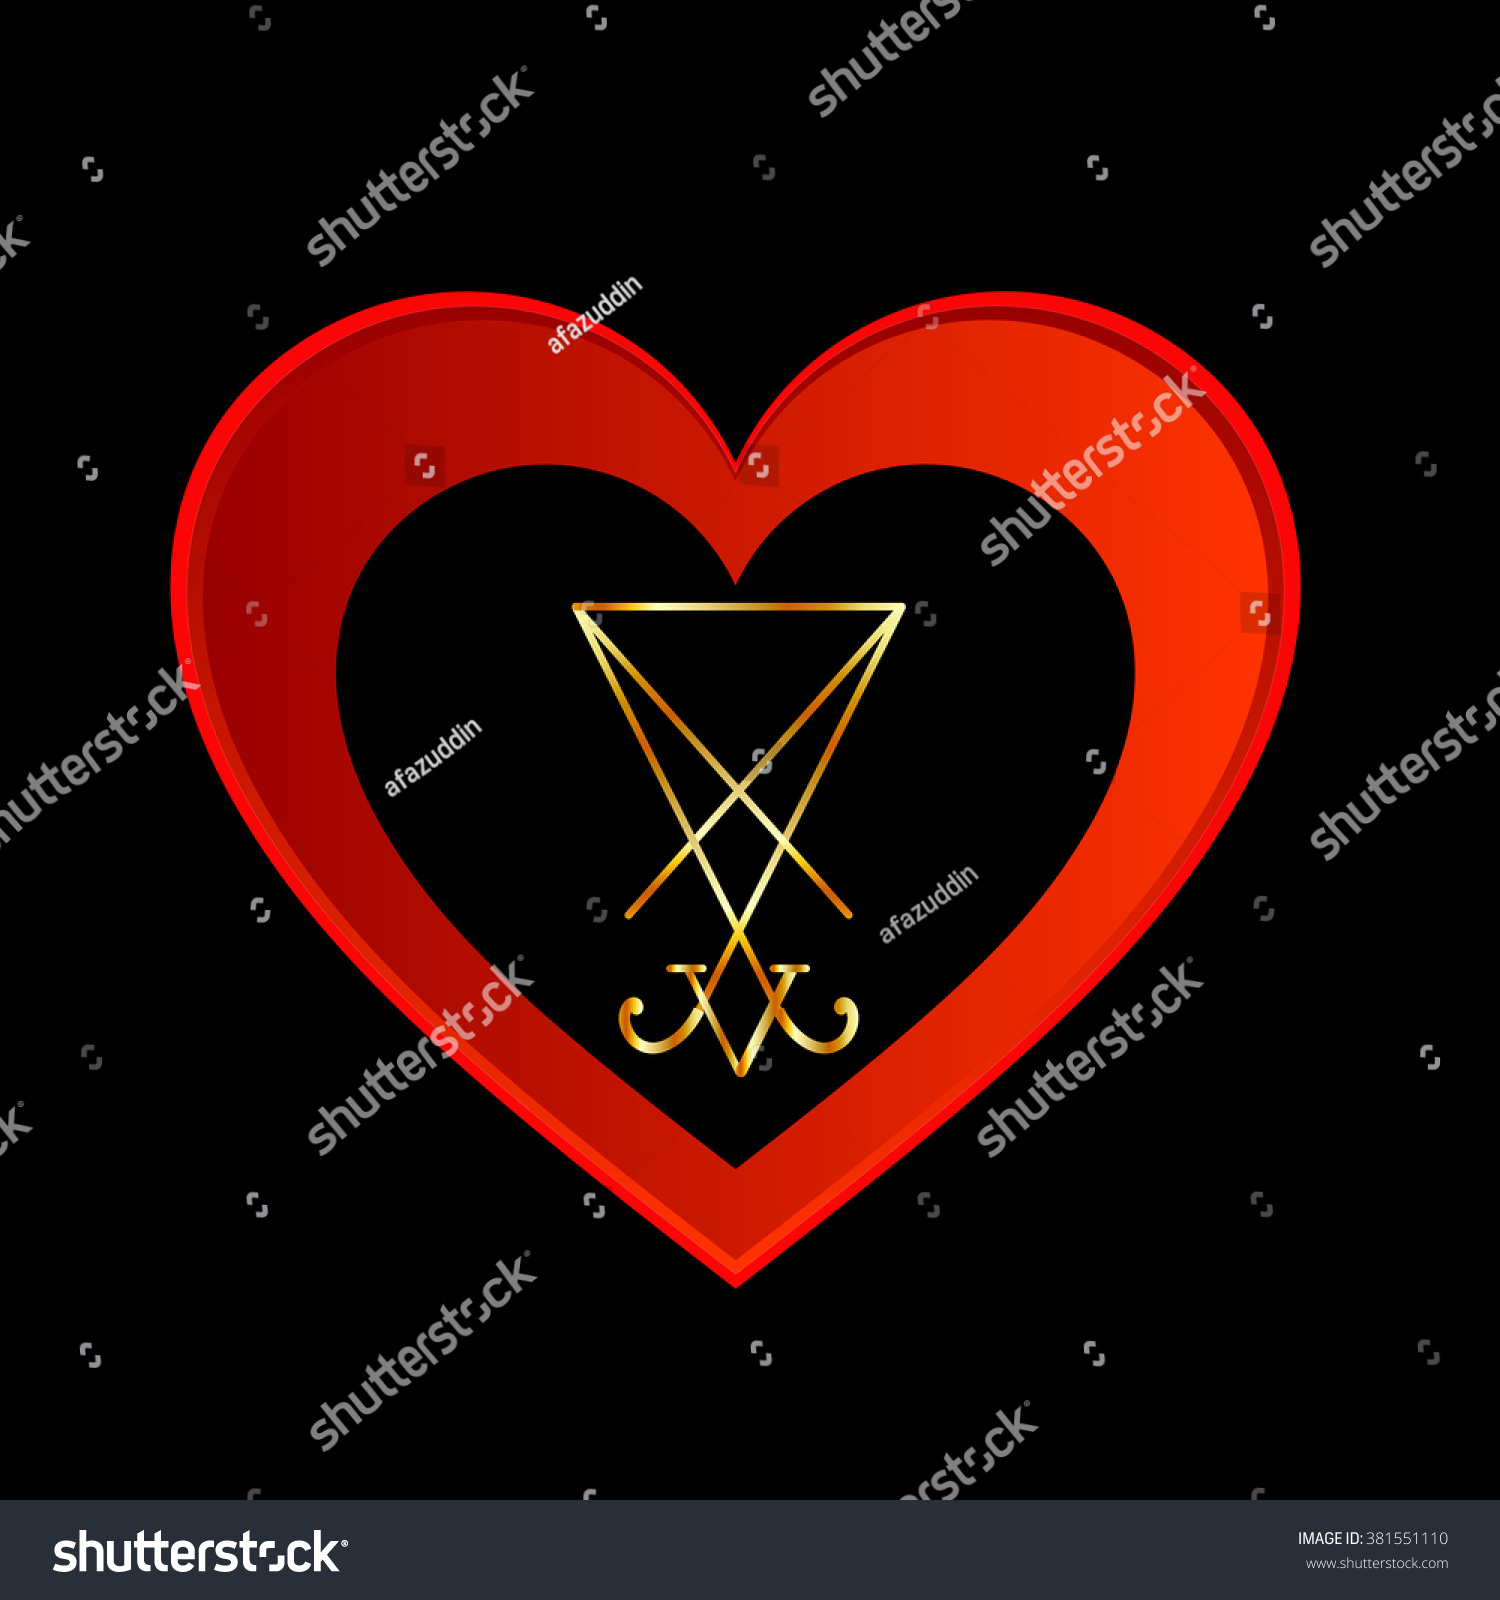 Sigil lucifer within heart stock vector 381551110 shutterstock sigil of lucifer within a heart biocorpaavc Images